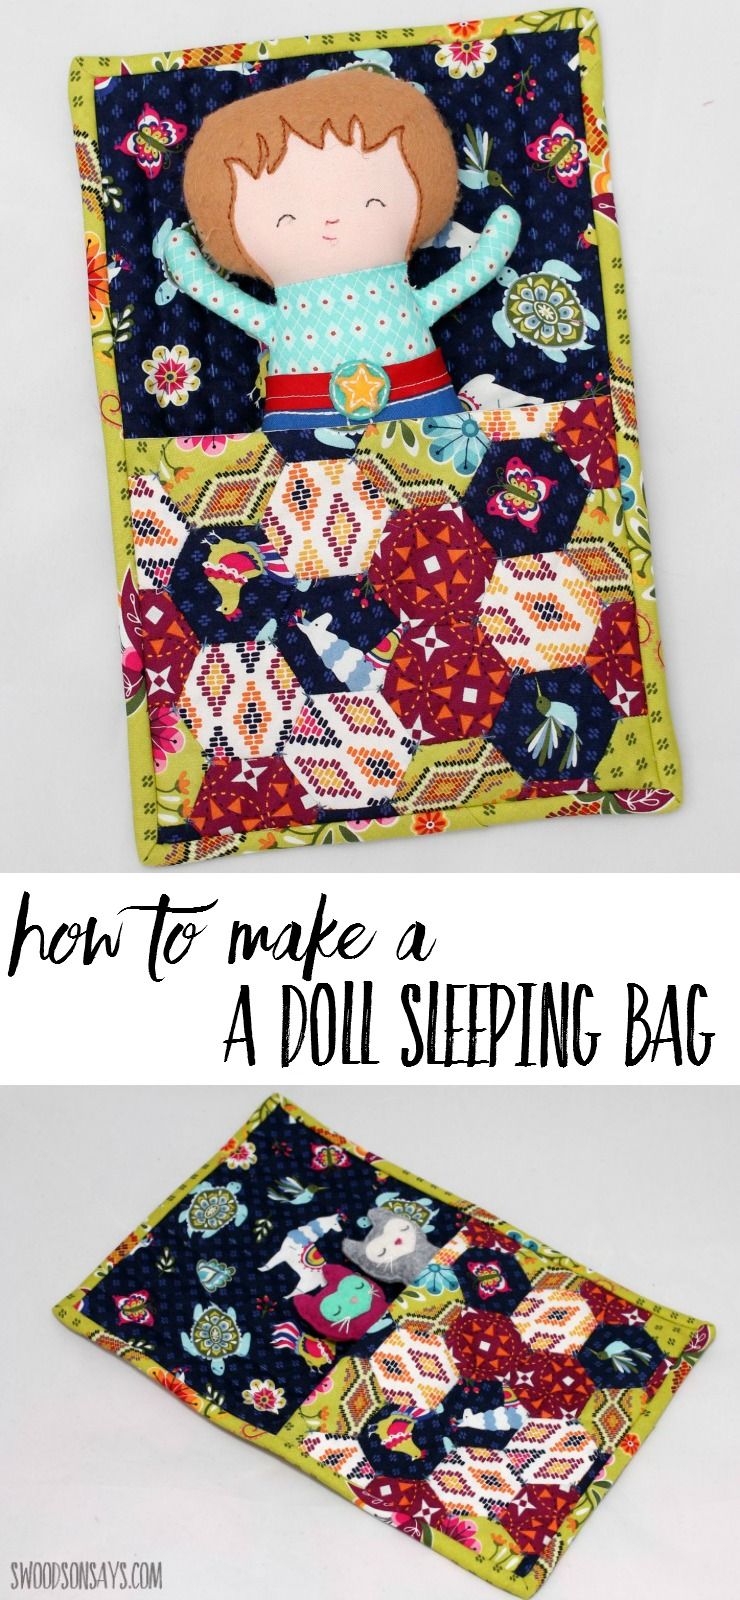 How to make a doll sleeping bag! This is a hand sewing tutorial for a pretty patchwork version. Sew a sleeping bag for your kiddo's softie to snuggle in, as an easy english paper piecing project that doesn't require a ton of hexies.